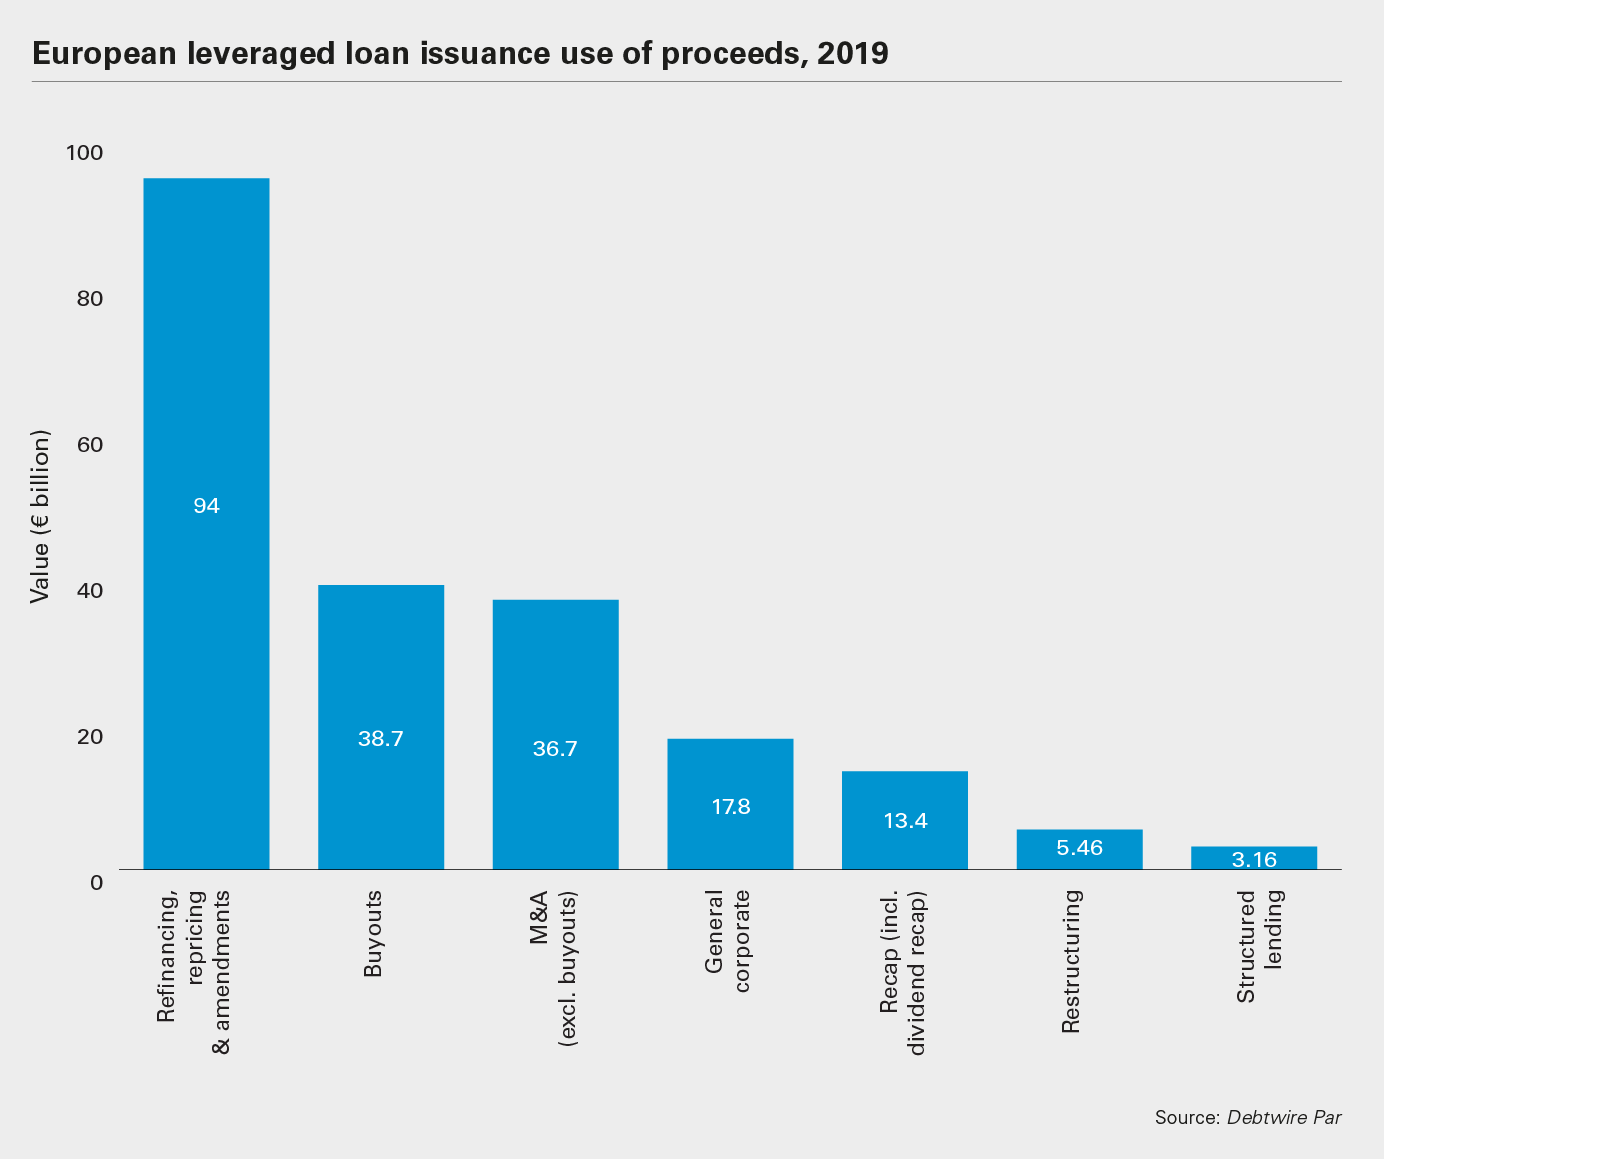 European leveraged loan issuance use of proceeds, 2019 chart